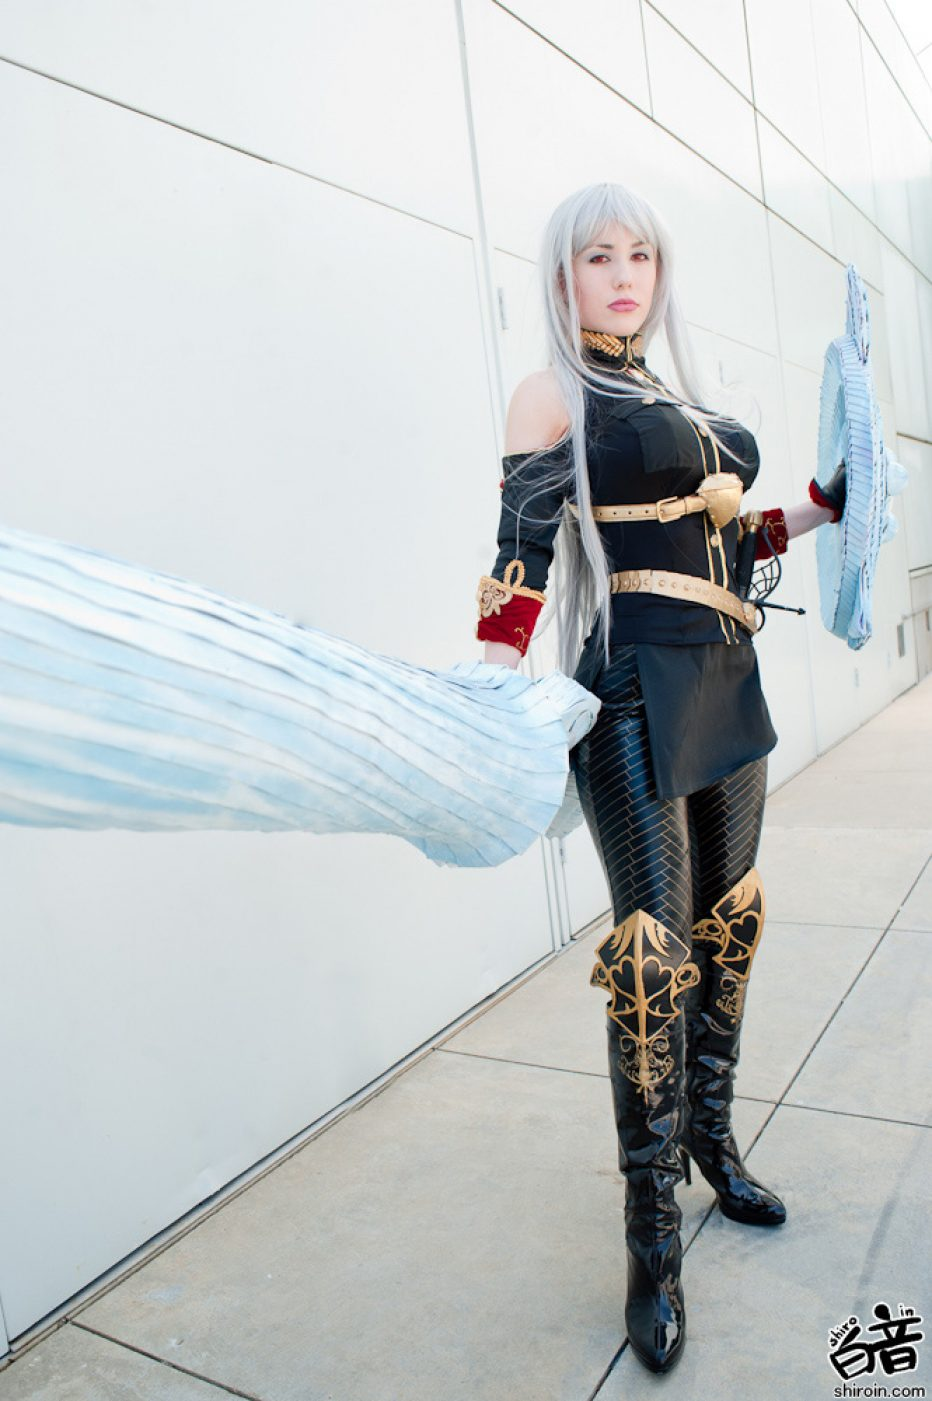 Valkyria-Chronicles-Selvaria-Bles-Cosplay-Gamers-Heroes-5.jpg